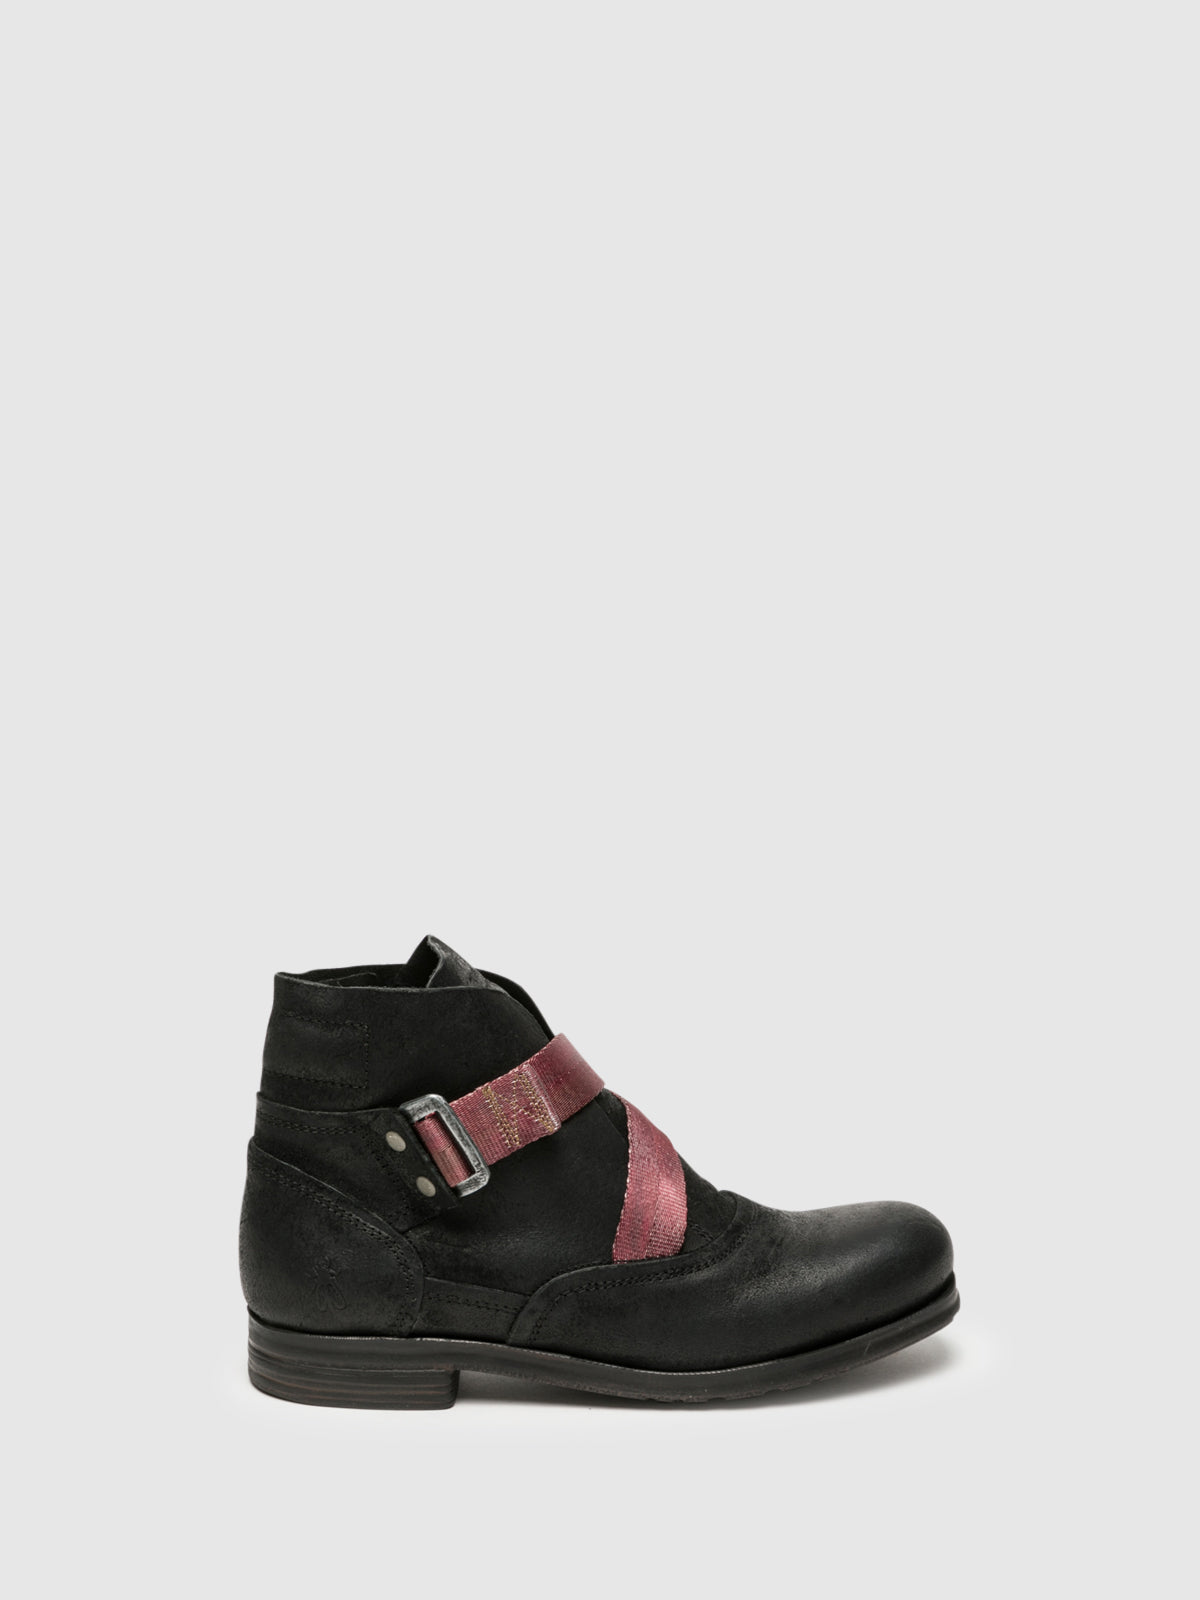 Fly London Coal Black Buckle Ankle Boots